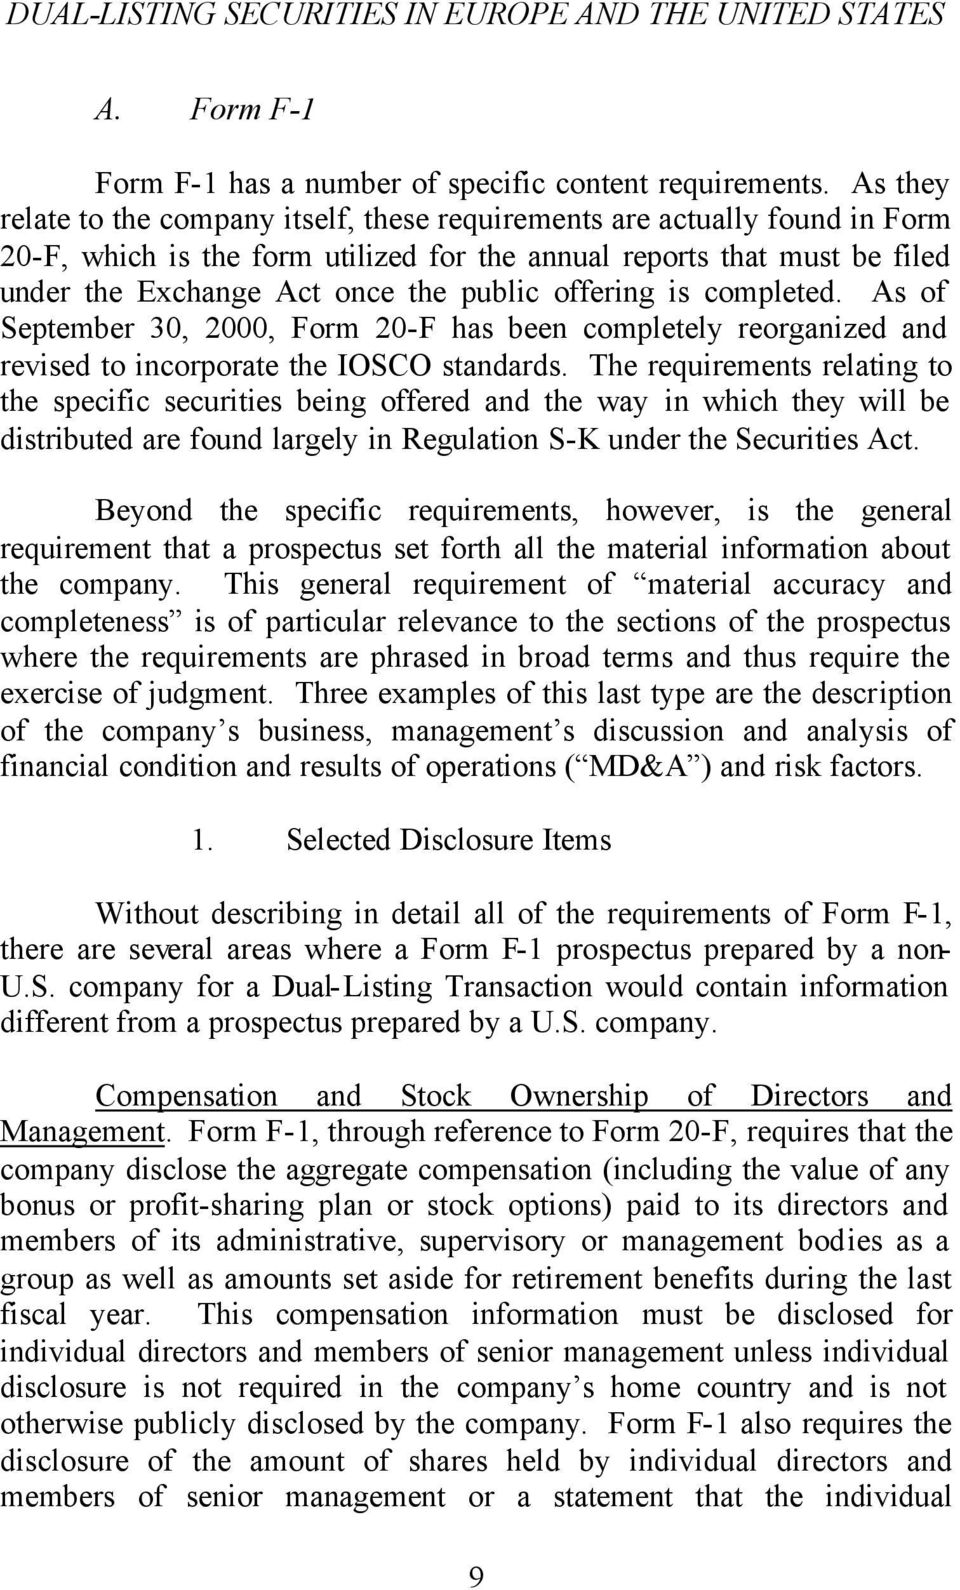 offering is completed. As of September 30, 2000, Form 20-F has been completely reorganized and revised to incorporate the IOSCO standards.